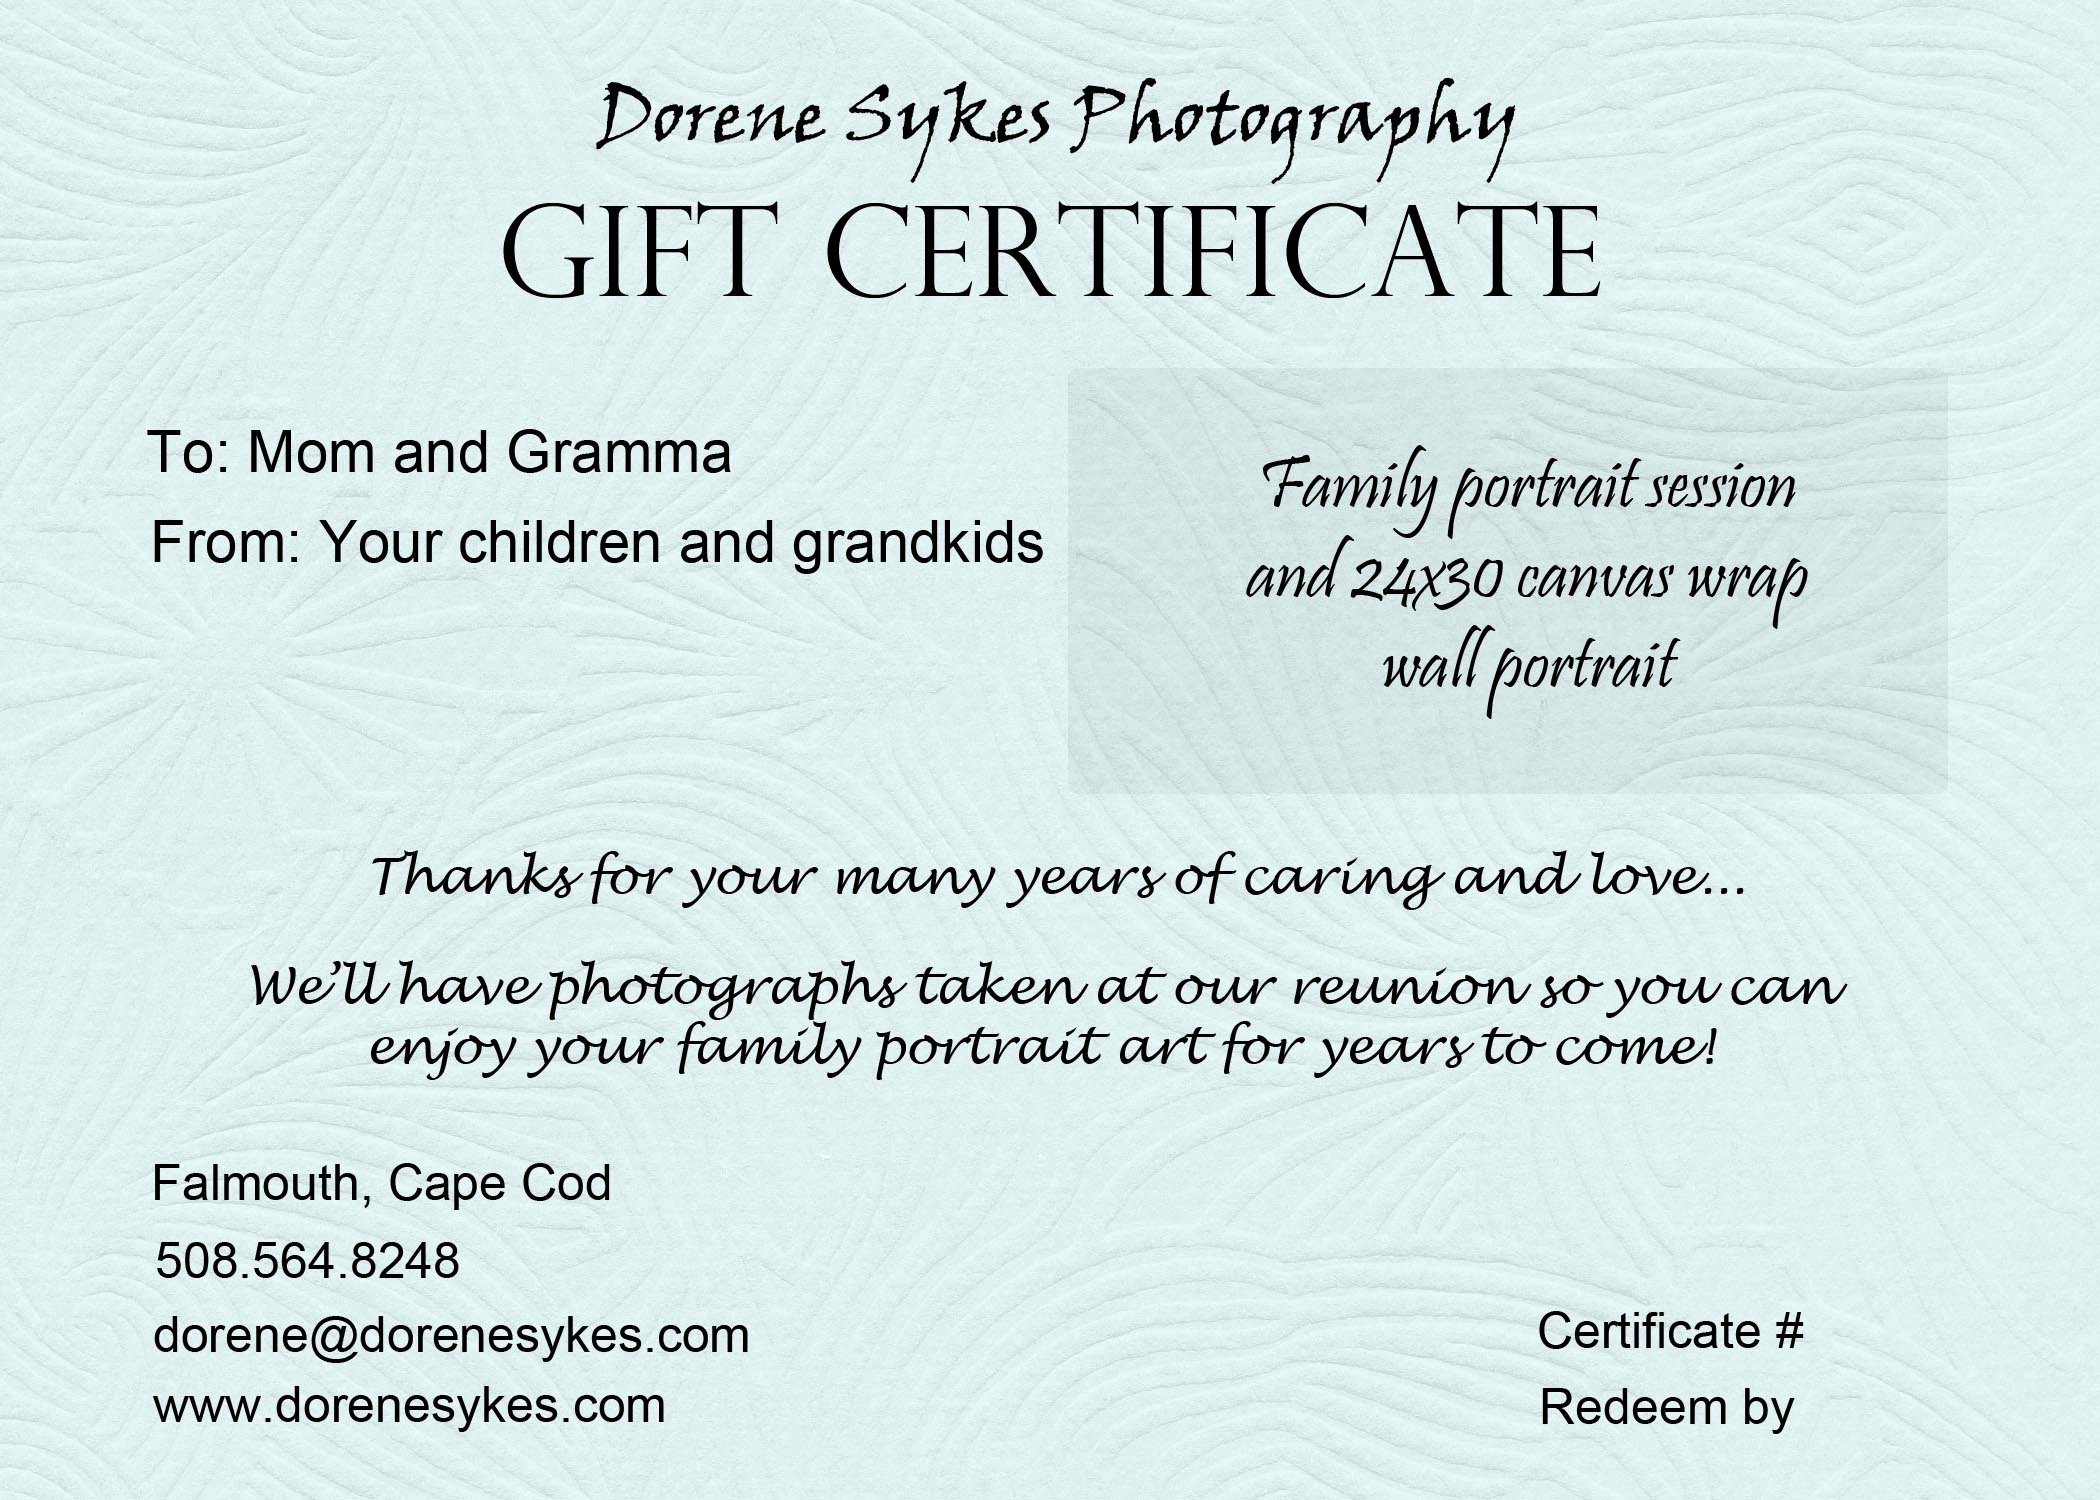 Gift Certificate Wording Inspirational Gift Certificate Sample